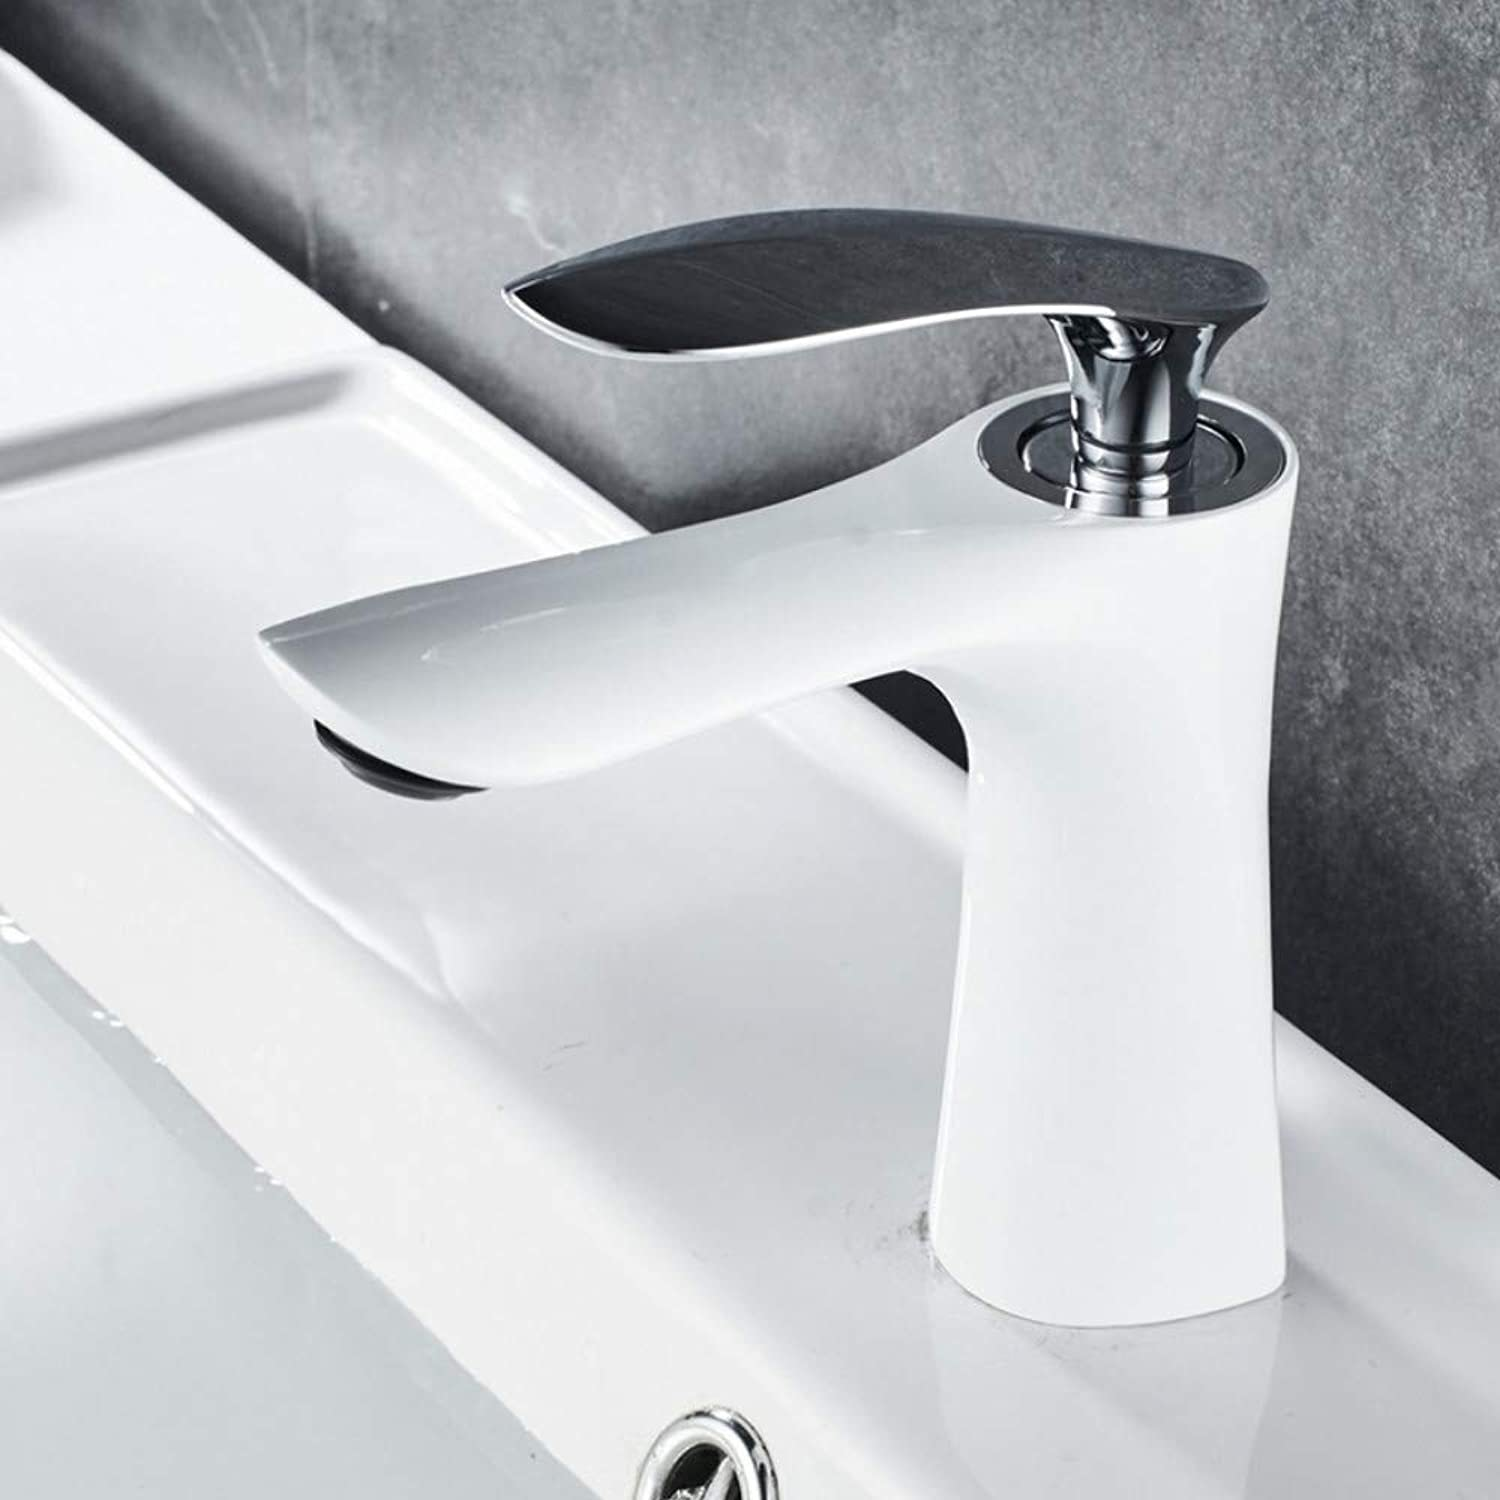 Bathroom Basin Faucets White Elegant Bathroom Faucet Hot and Cold Water Basin Mixer Tap Chrome Finish Brass Toilet Sink Water